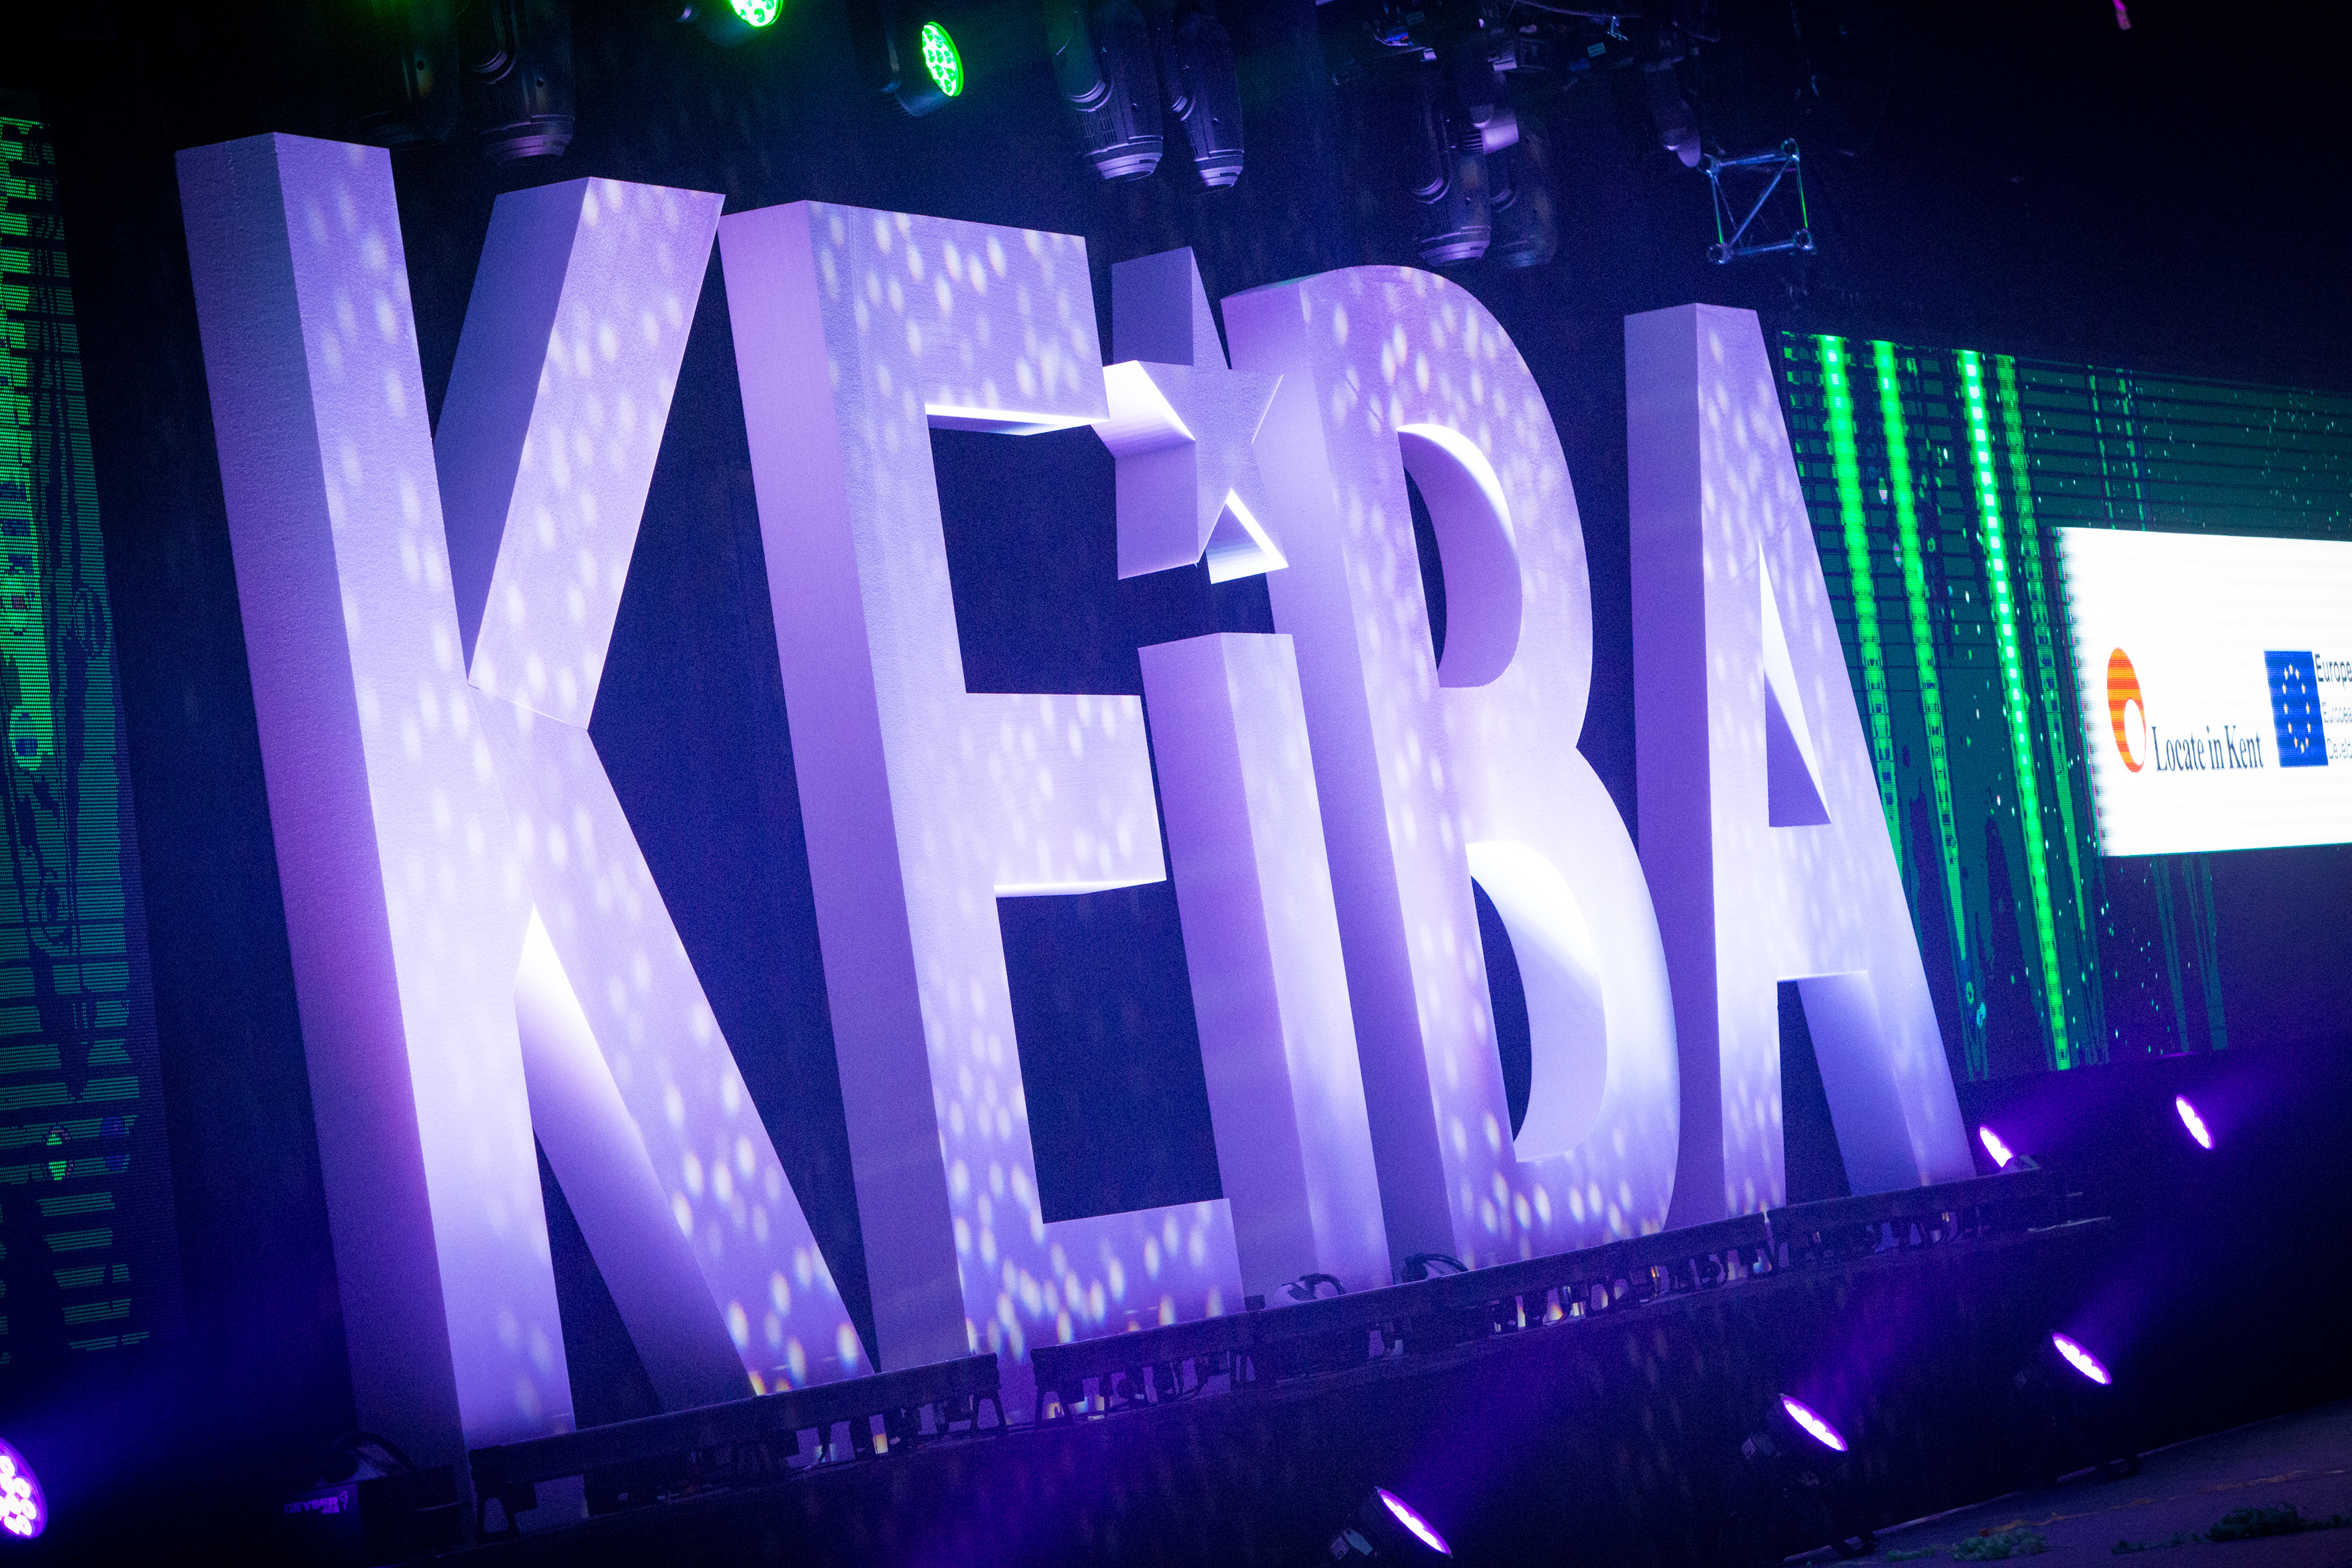 Organisers commit to KEiBA 2021 - KEiBA